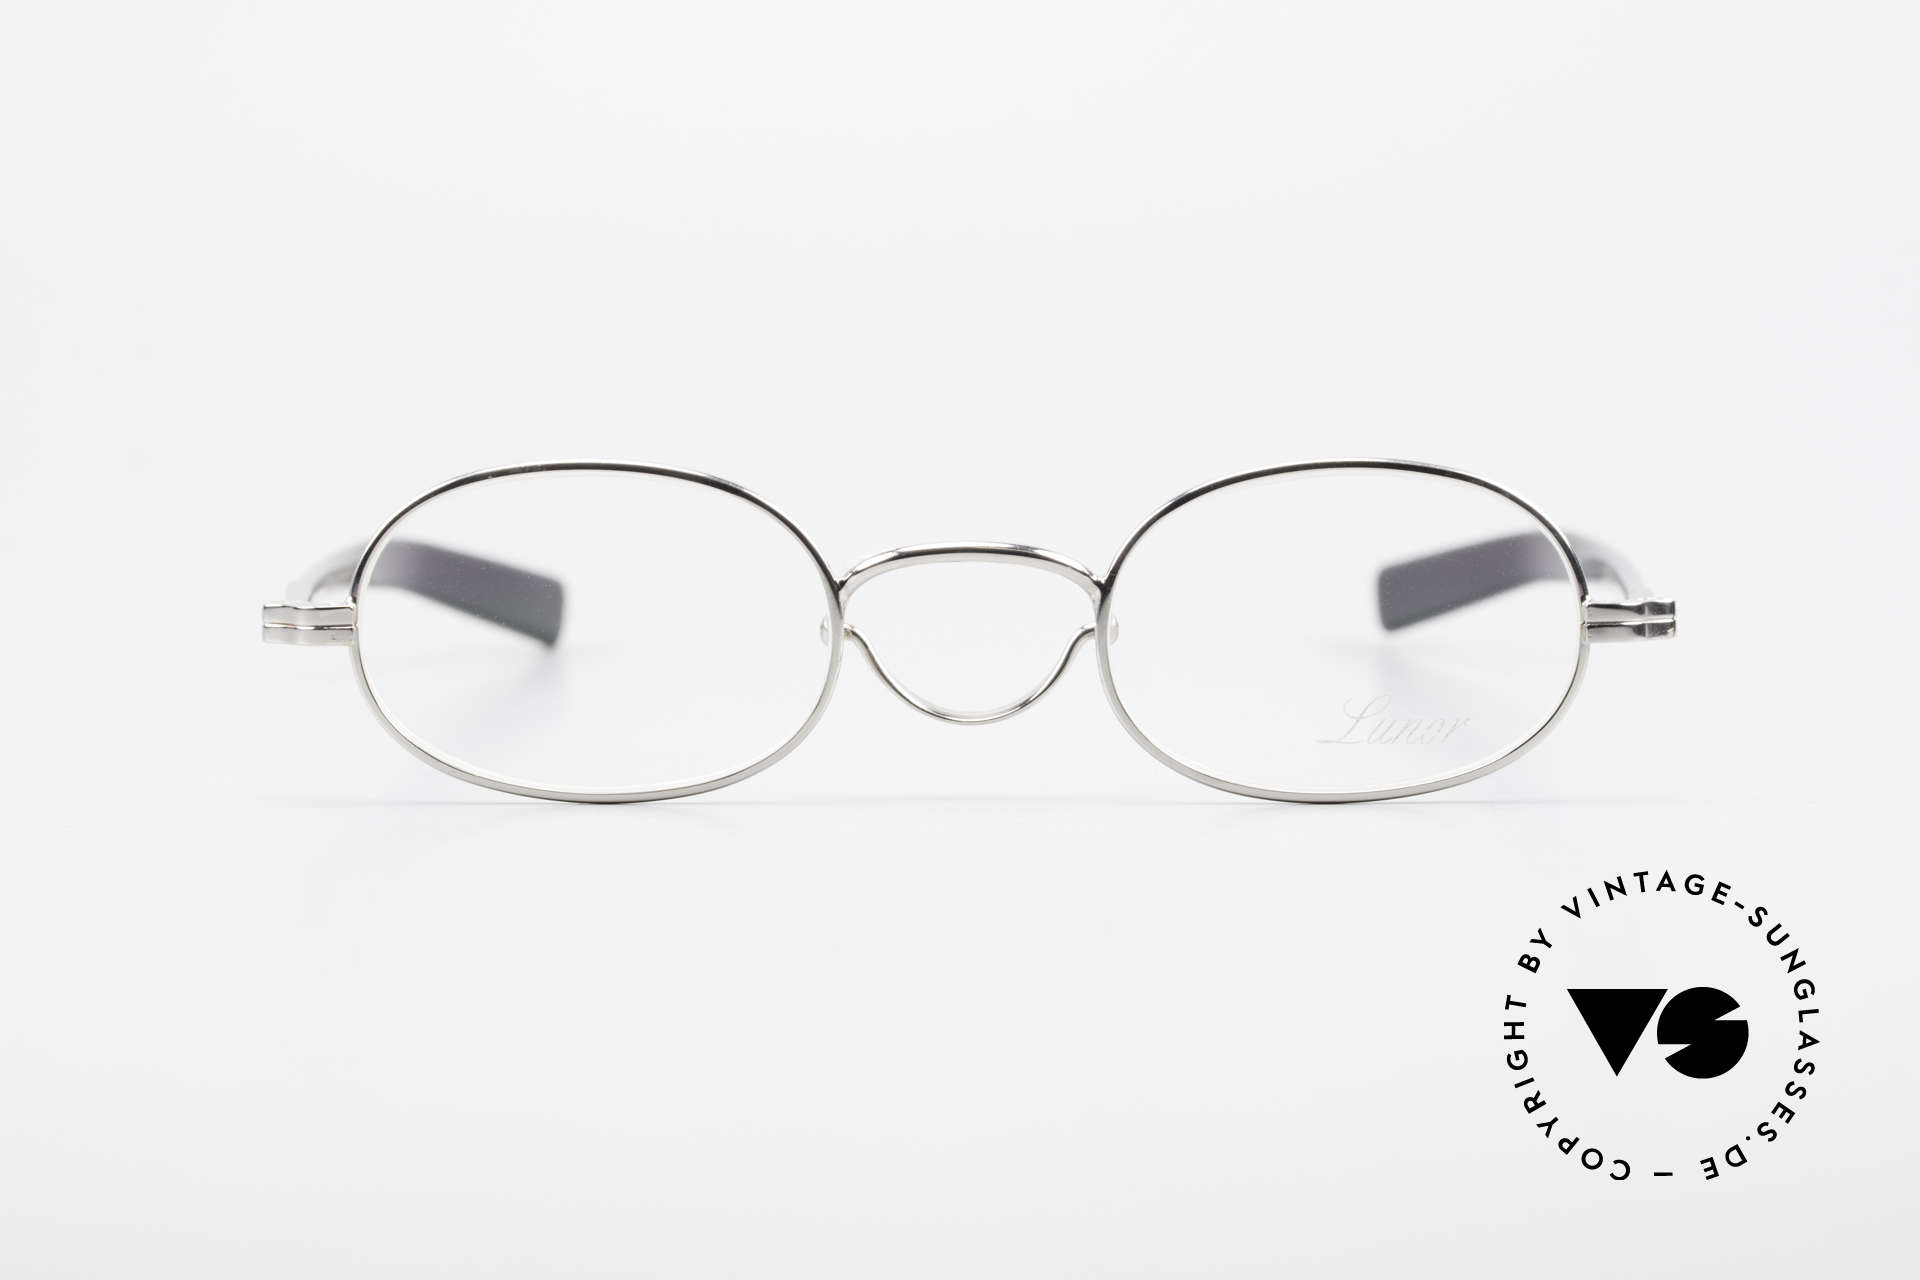 """Lunor Swing A 36 Oval Swing Bridge Vintage Glasses, well-known for the """"W-bridge"""" & the plain frame designs, Made for Men and Women"""